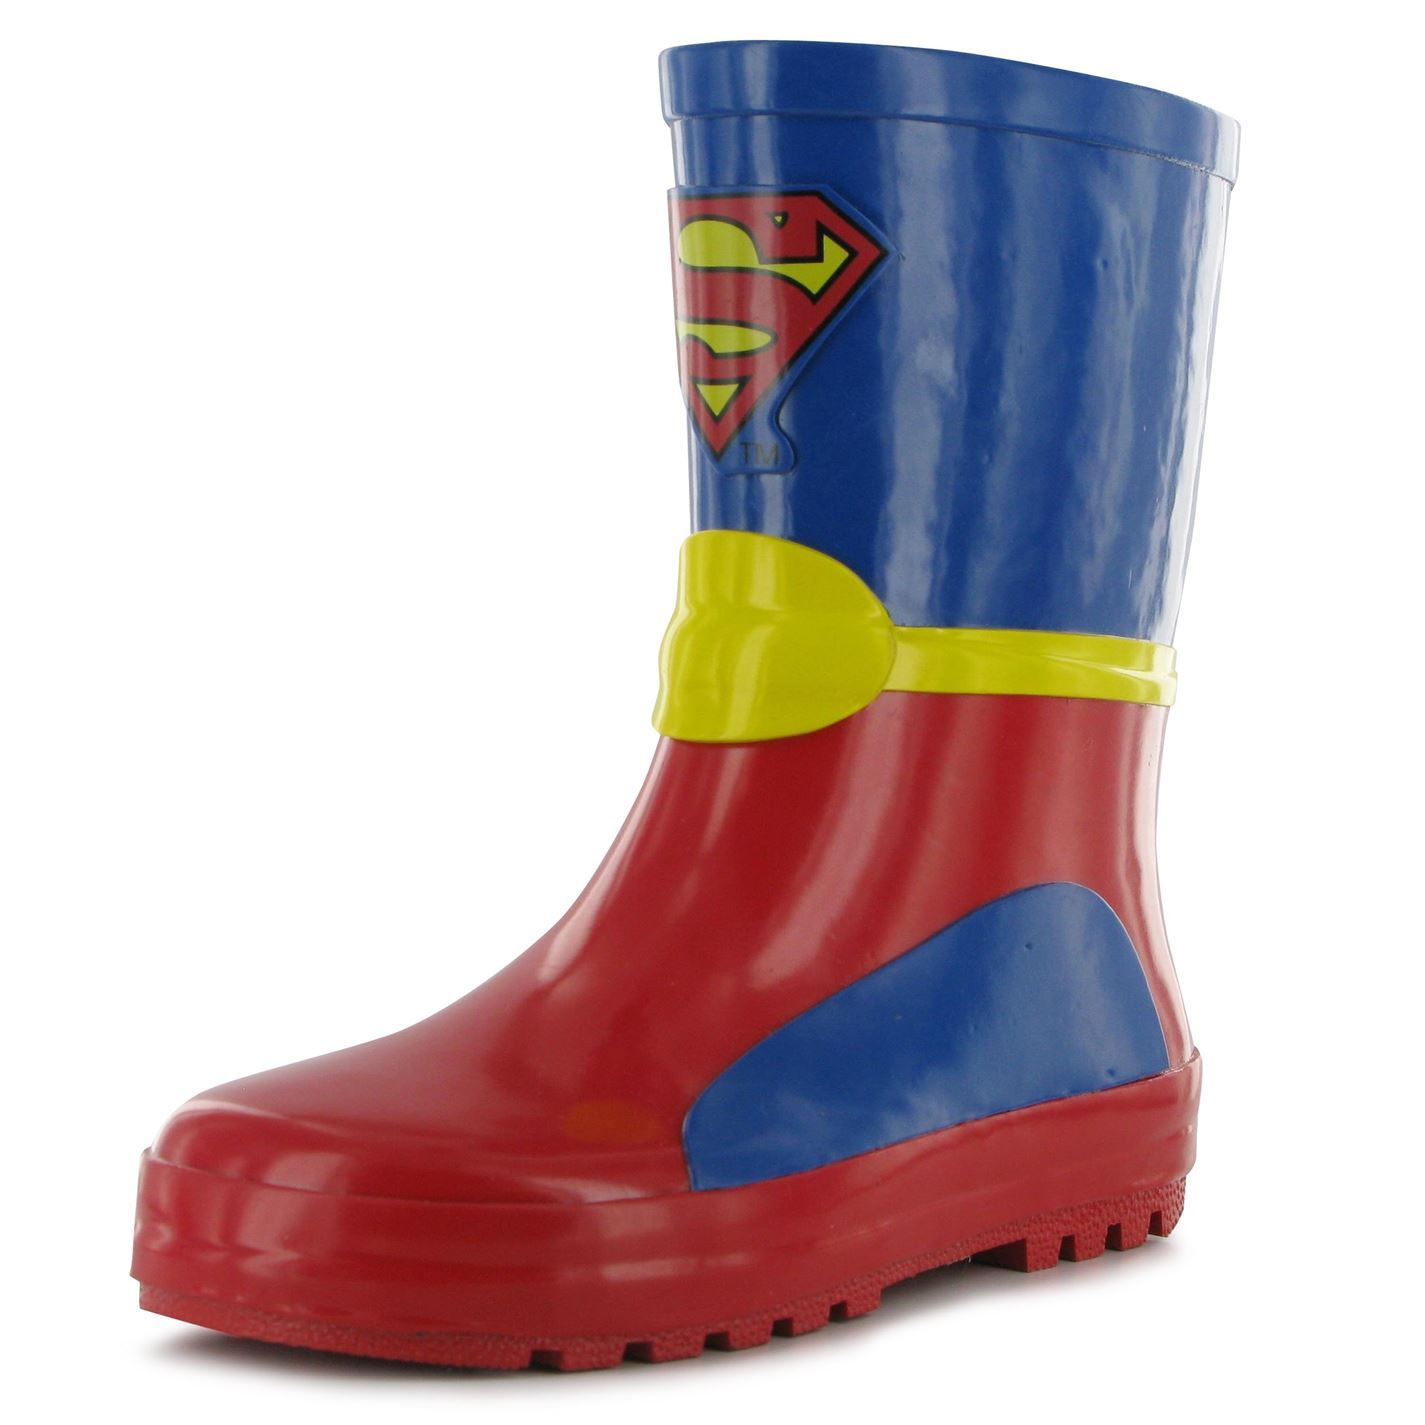 View all Outdoor Footwear Browse our women's wellington boots range for some stylish and waterproof ladies wellies. The ladies wellington boots are made by great brands such as Golddigga, Kangol, Muck Boot and Miss Fiori.